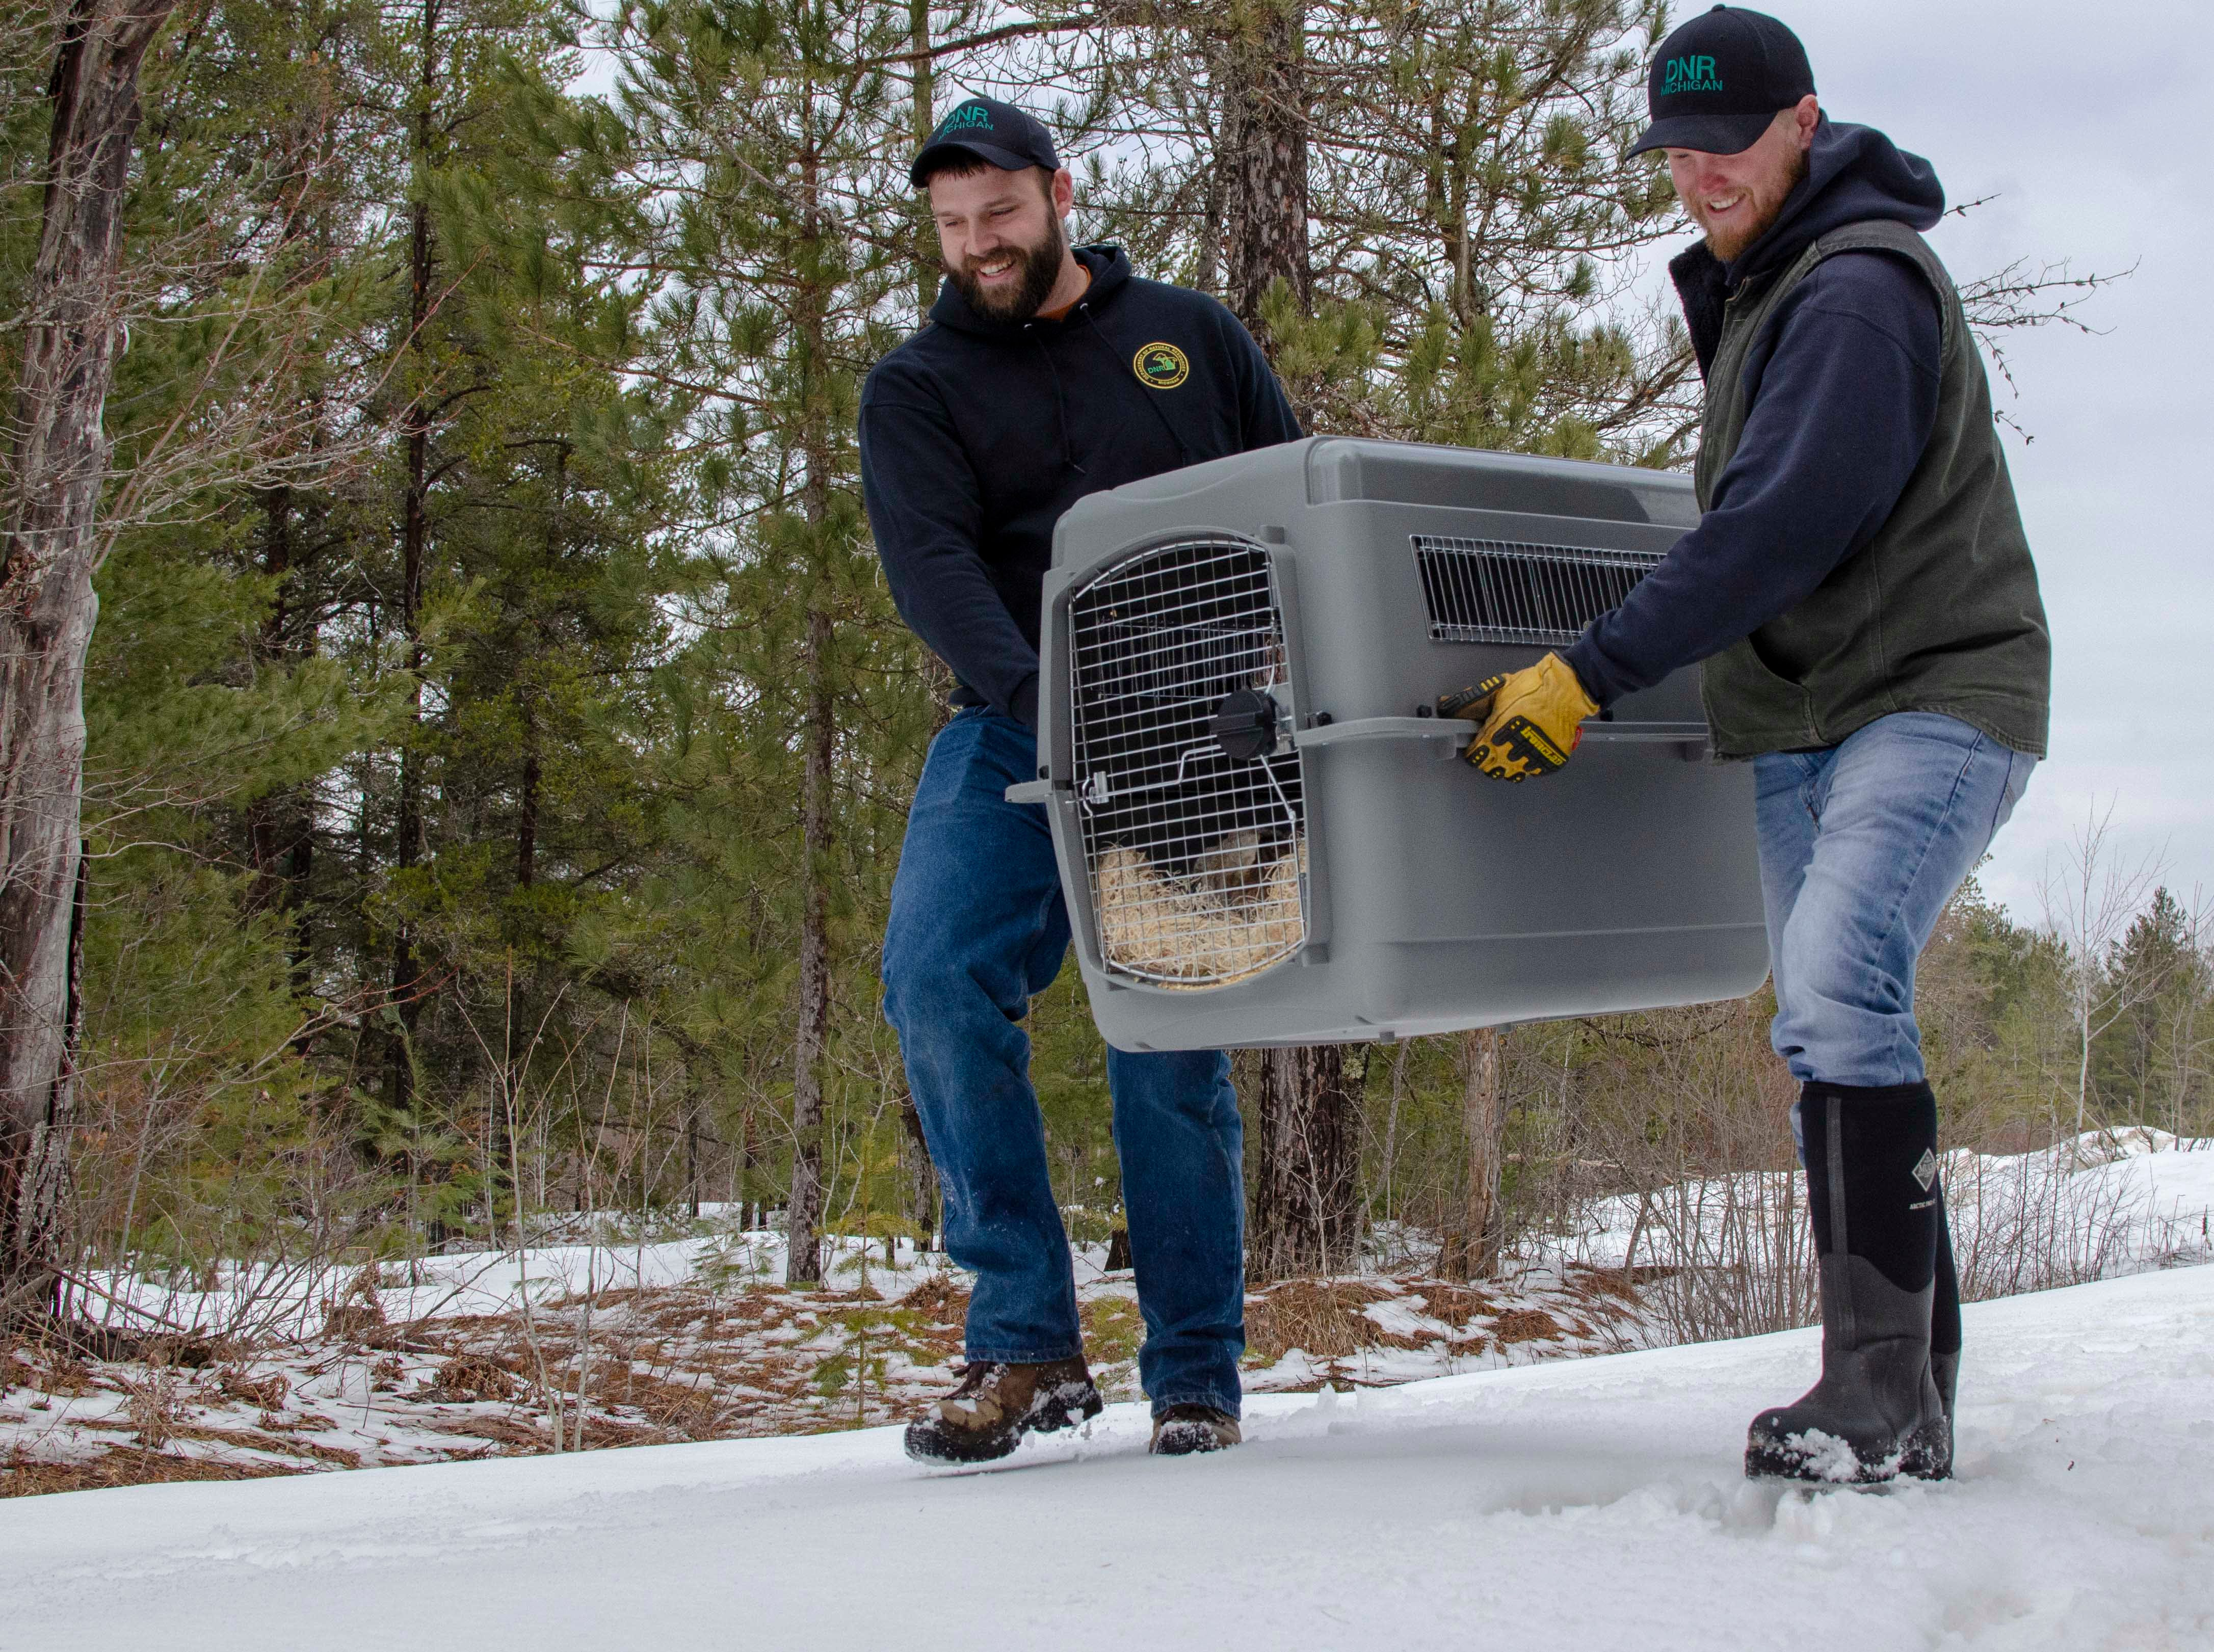 Michigan Department of Natural Resources wildlife biologist Cody Norton, left, and DNR wildlife technician Don Brown bring a Canada lynx from their truck to a release site in Schoolcraft County.